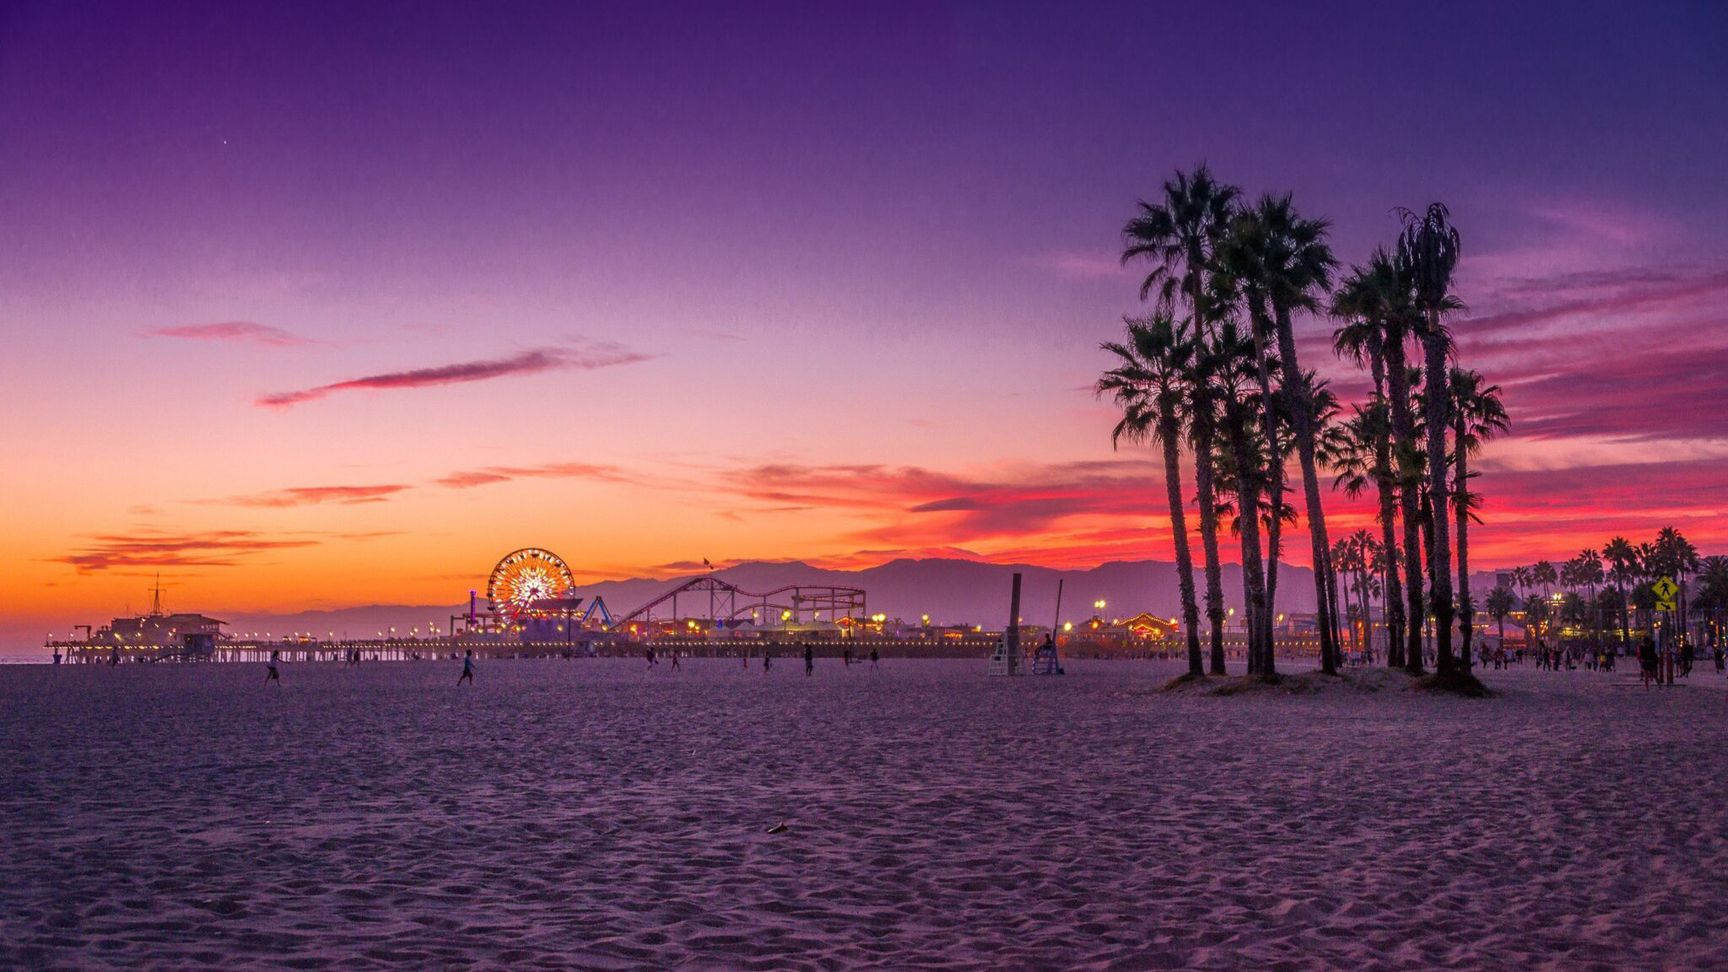 s2wsantamonicabeachscene California wallpaper, Los